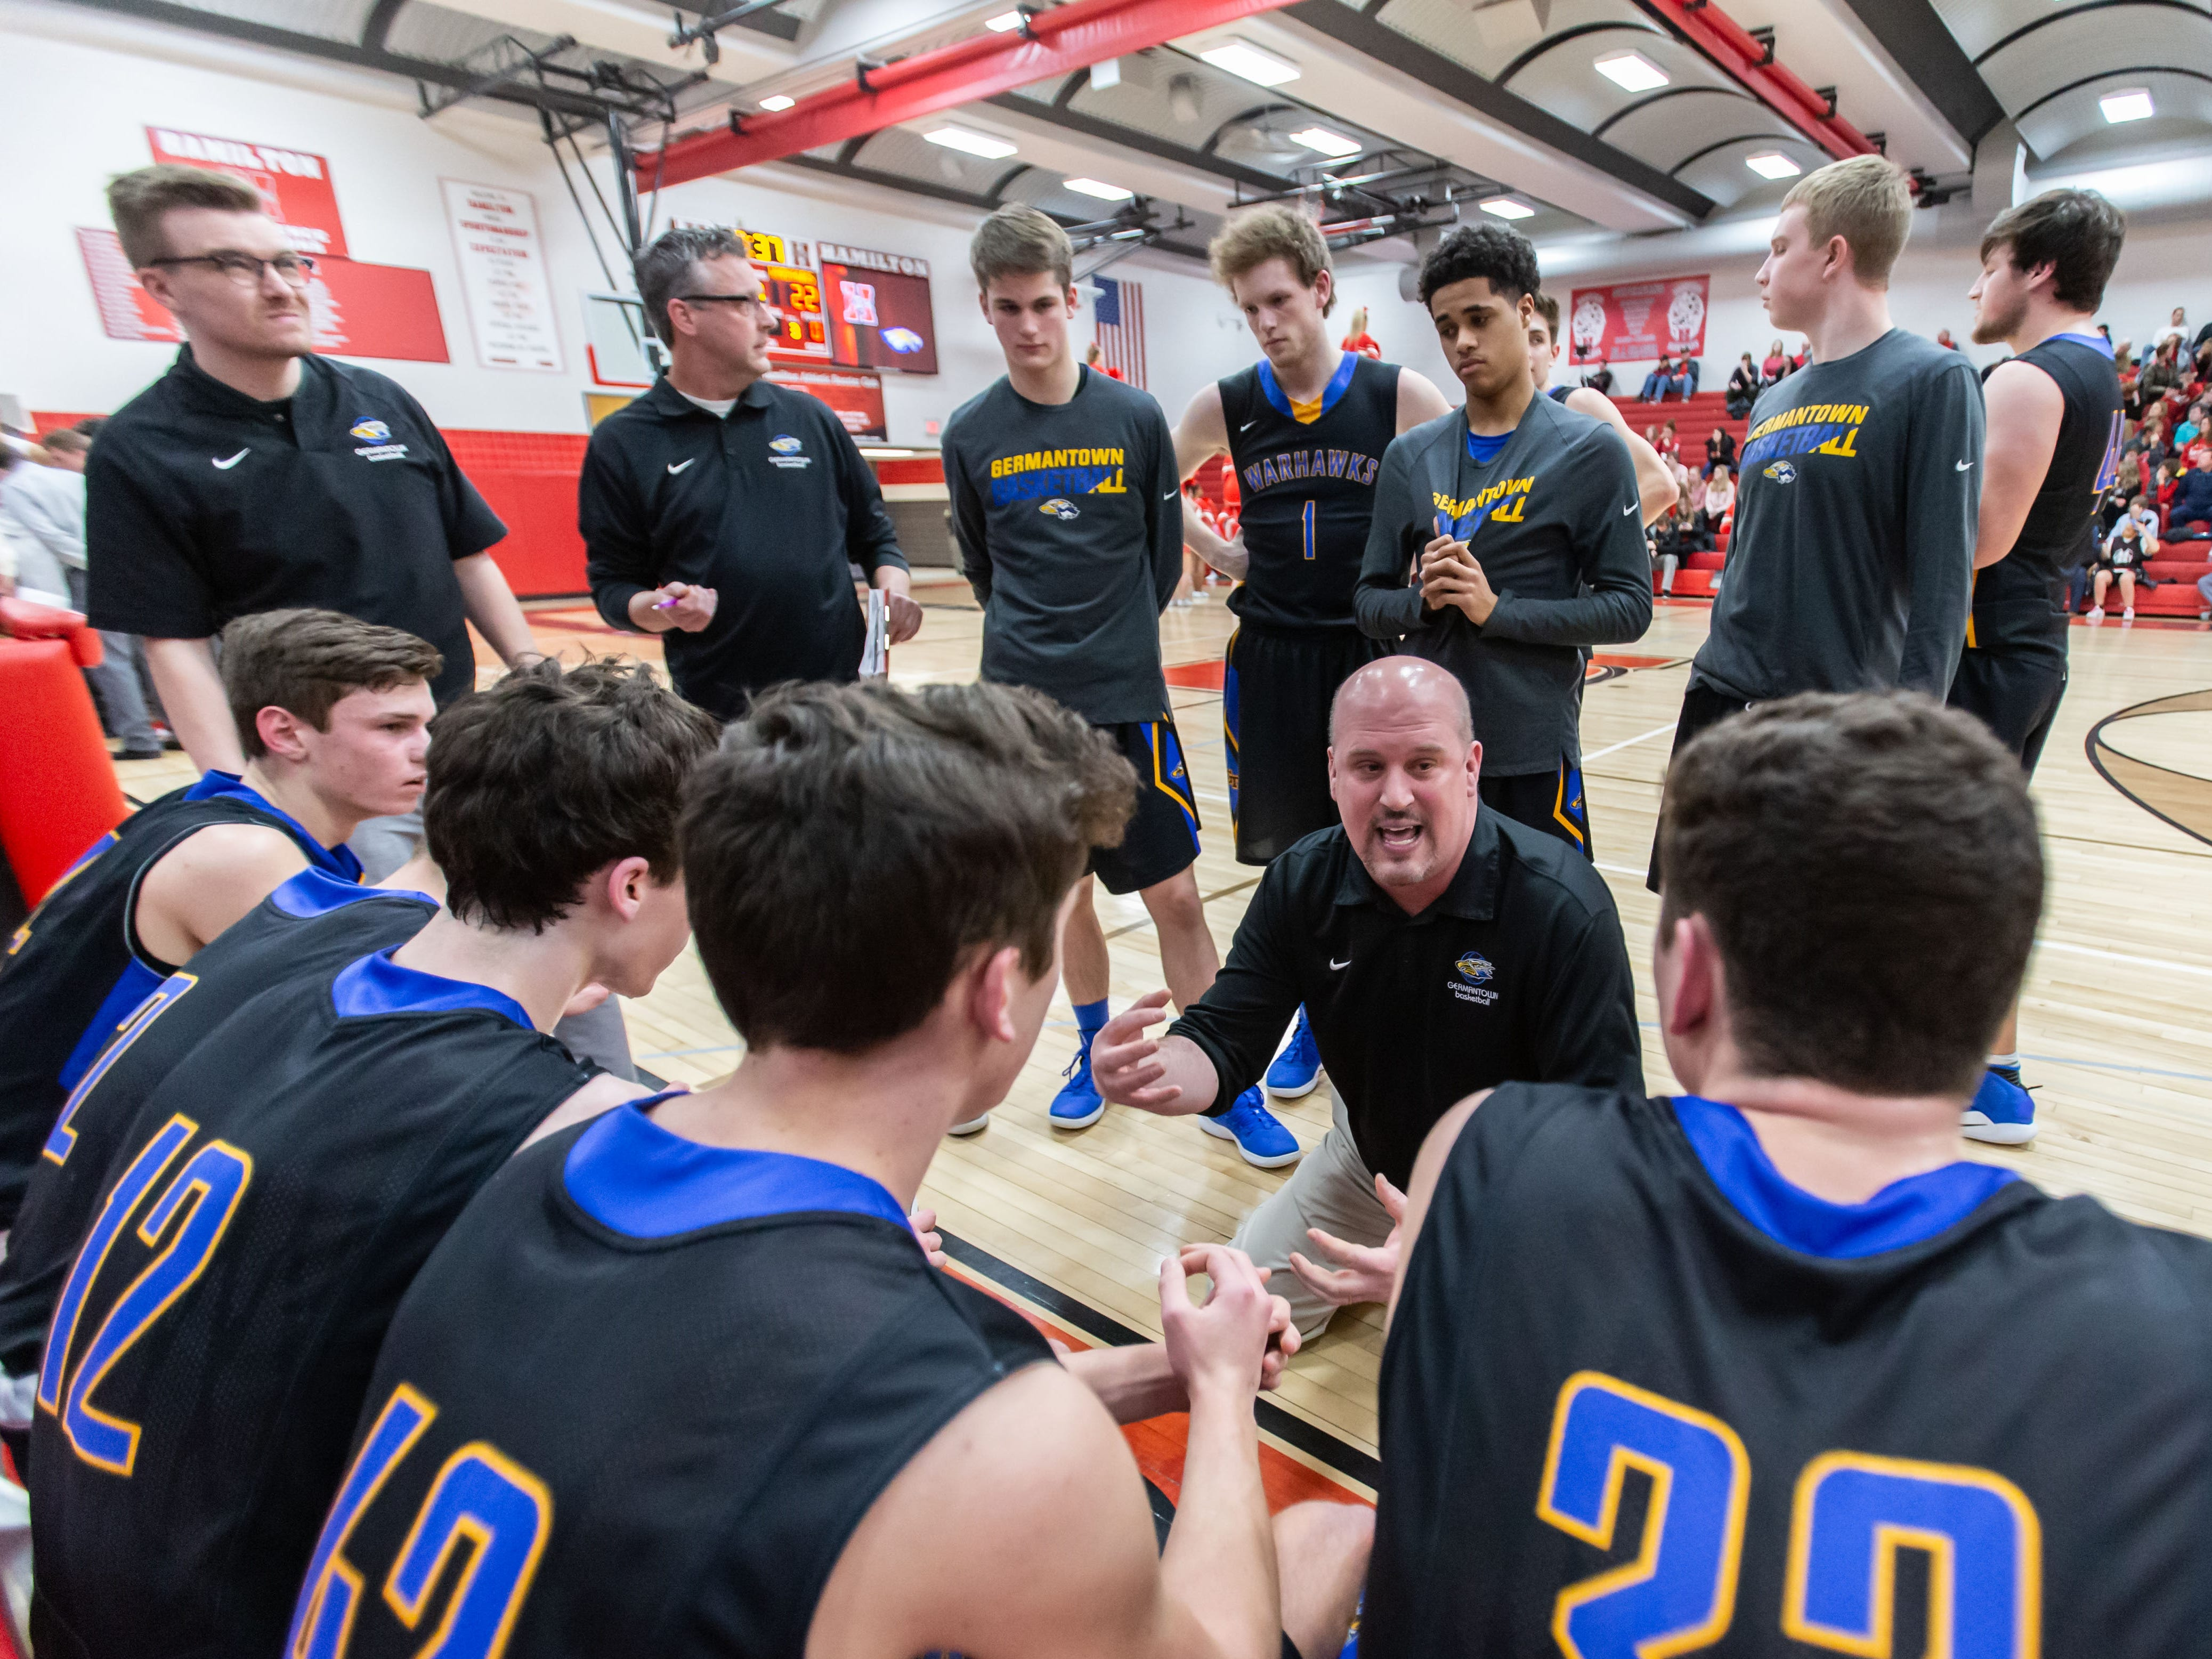 Germantown's head coach Steve Martin talks with his players during the game at Hamilton on Thursday, Feb. 14, 2019.